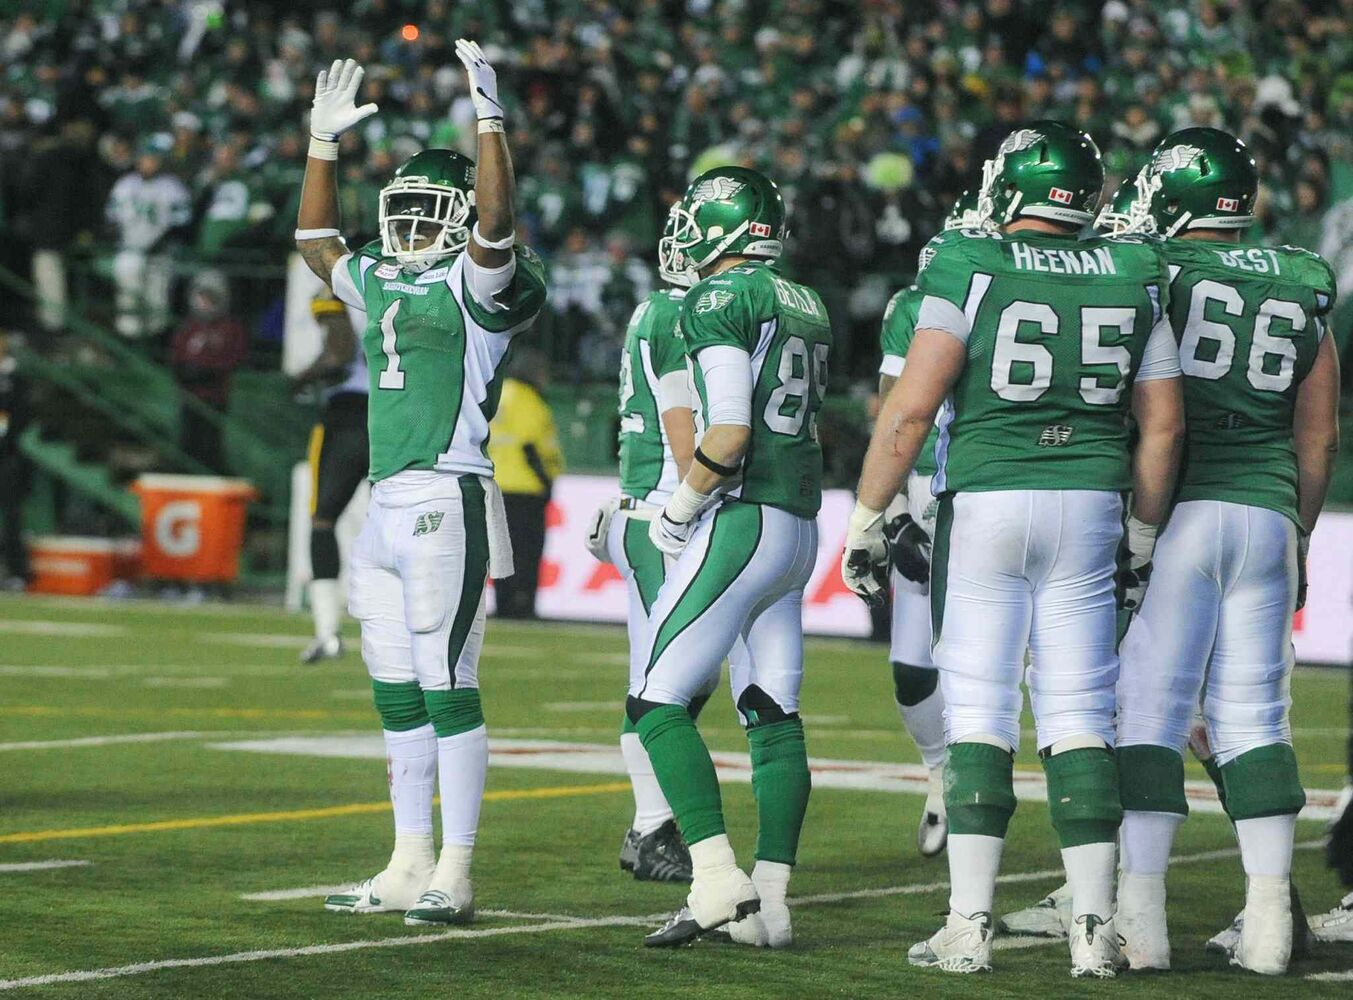 Saskatchewan Roughriders running back Kory Sheets (left) celebrates his team's victory over the Hamilton Tiger-Cats.